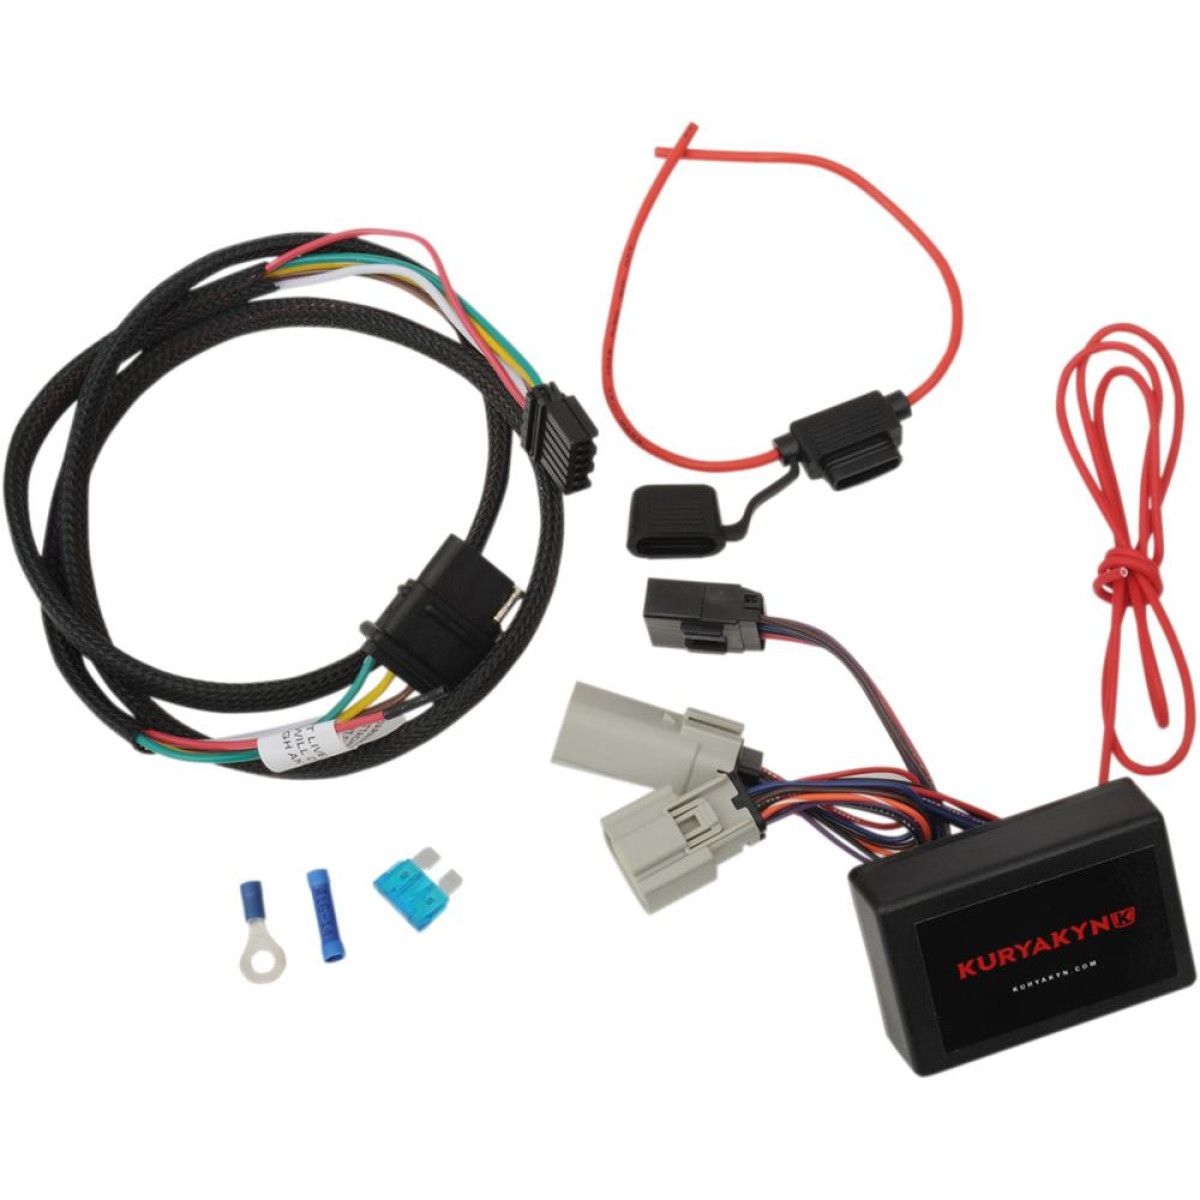 Kuryakyn Trailer Wiring Harness And Relay 5 Wire For 2014-2018 Trike ...